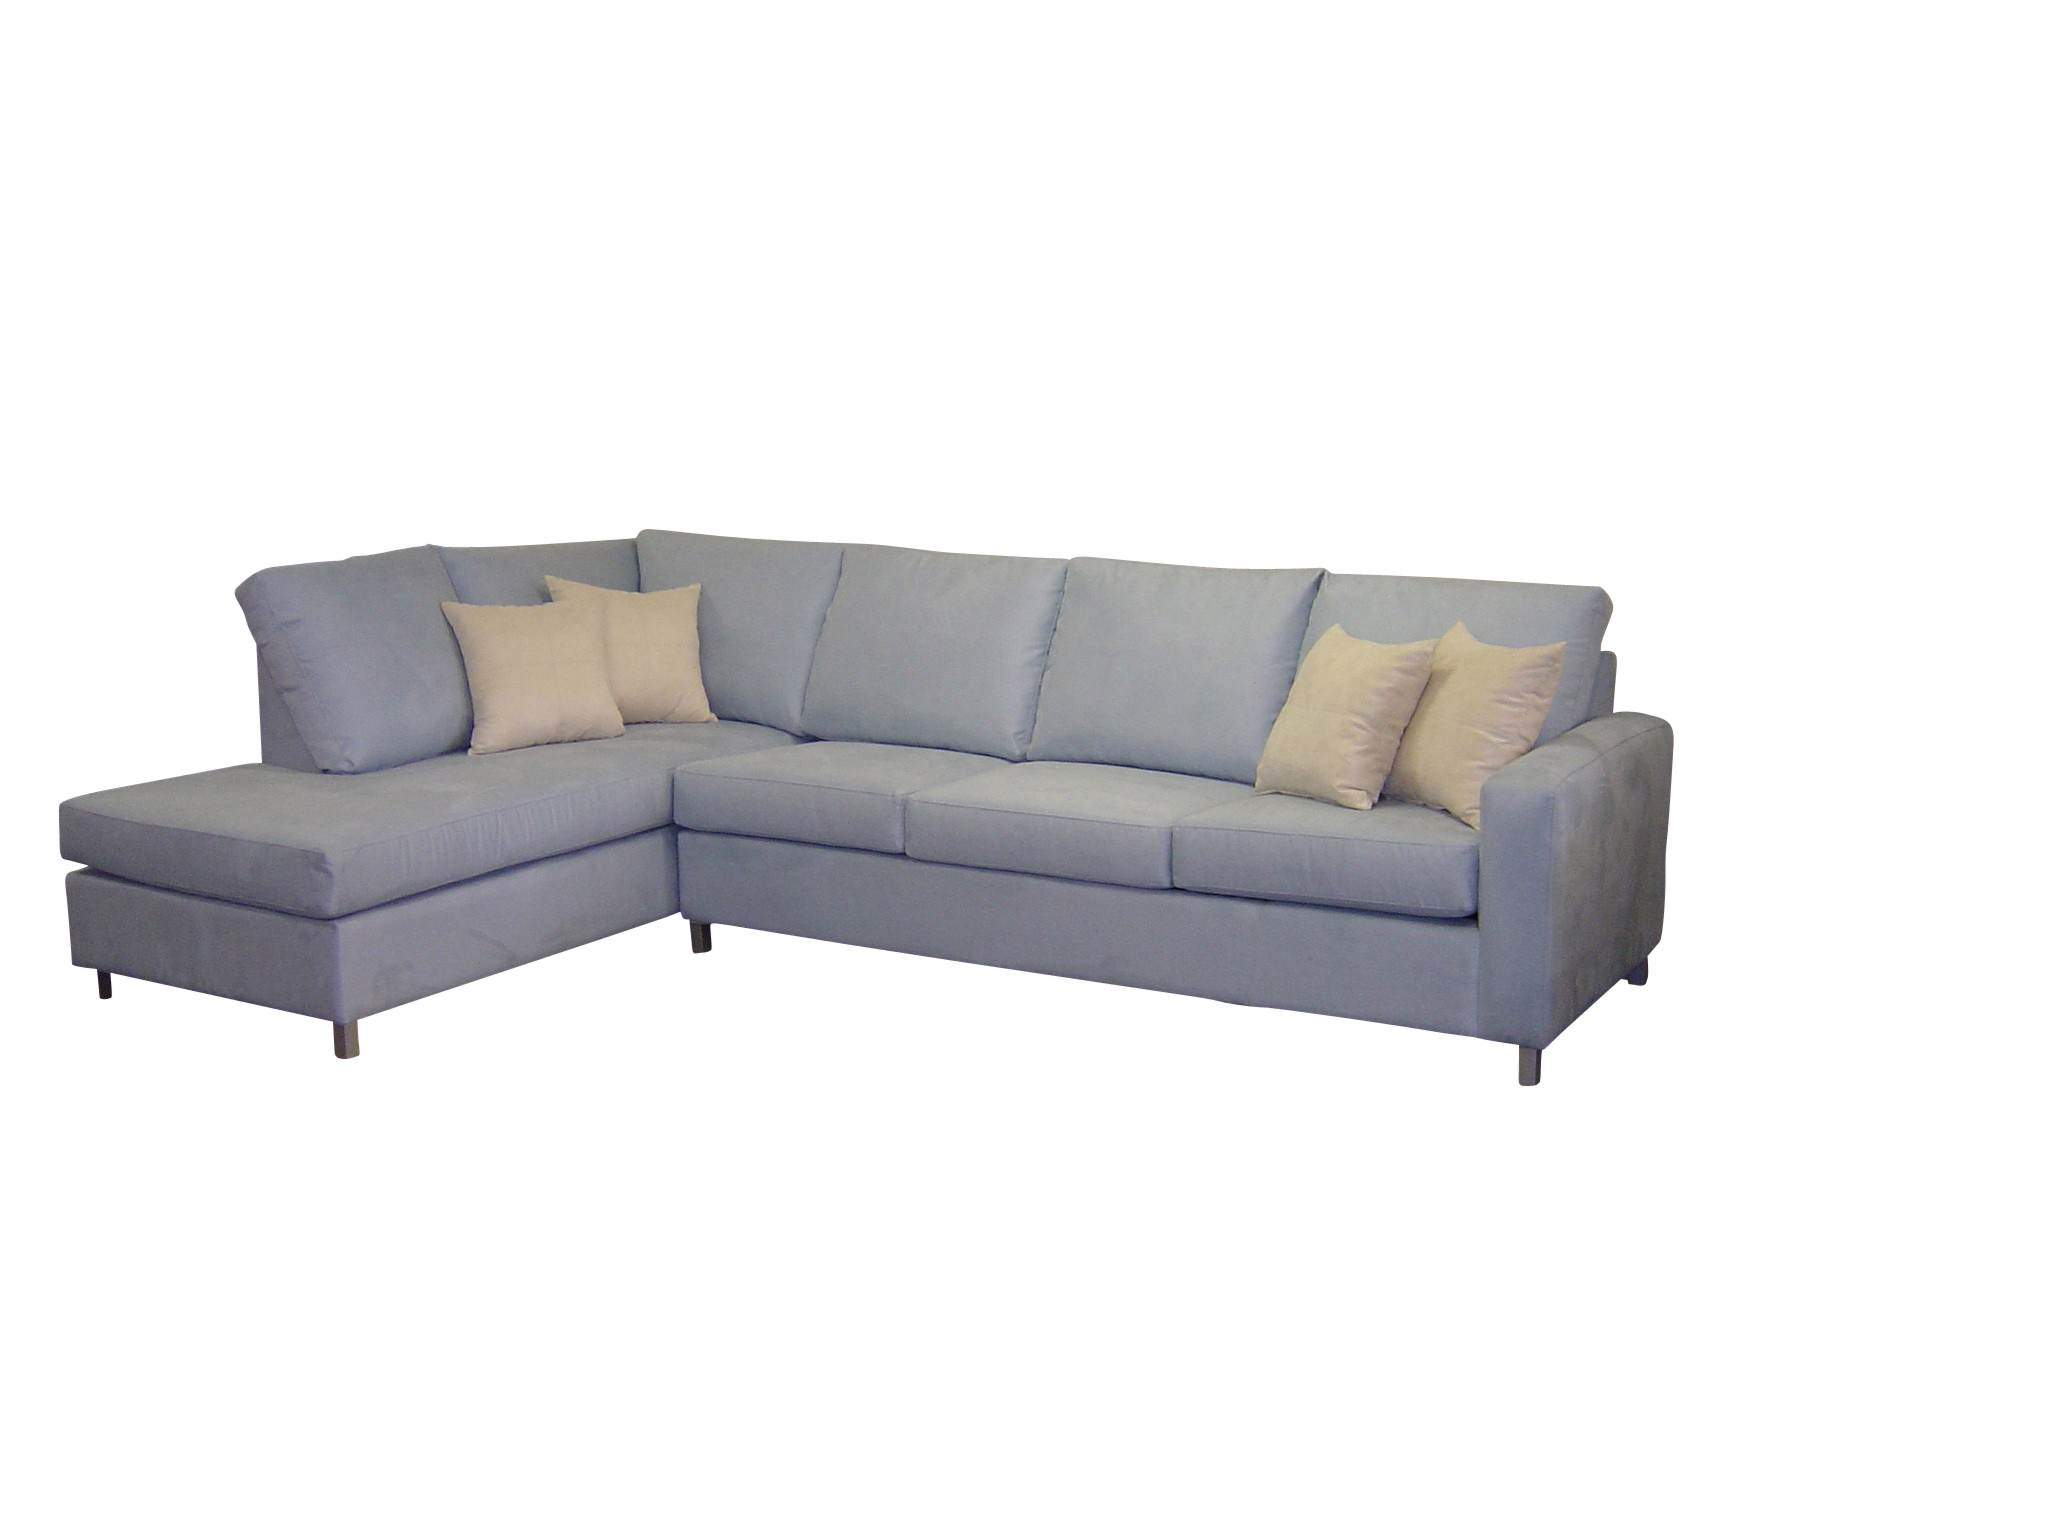 sofa bed sydney best price two seater modular sofabed or specialists